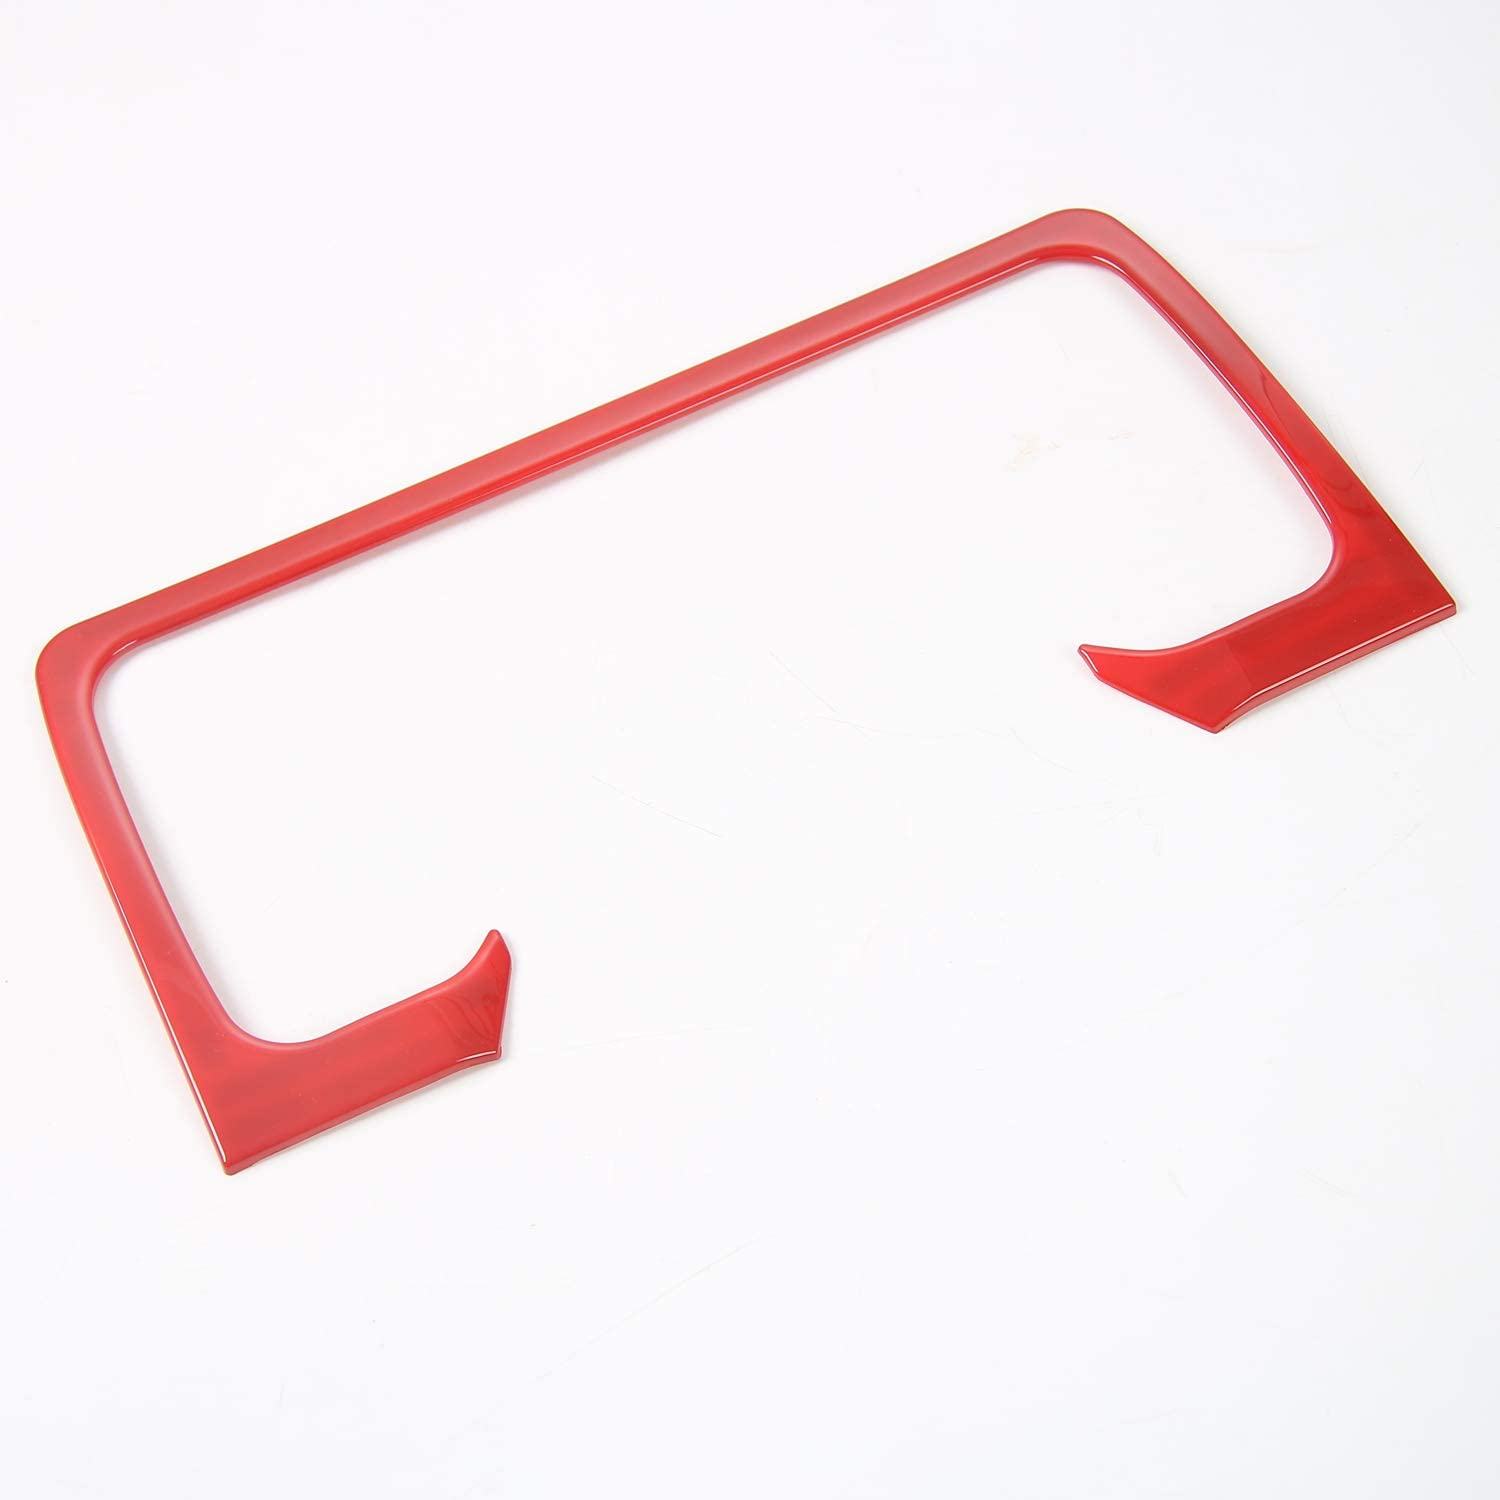 Red Car Interior Dashboard Panel Trim Cover for Jeep Wrangler TJ 1997-2006